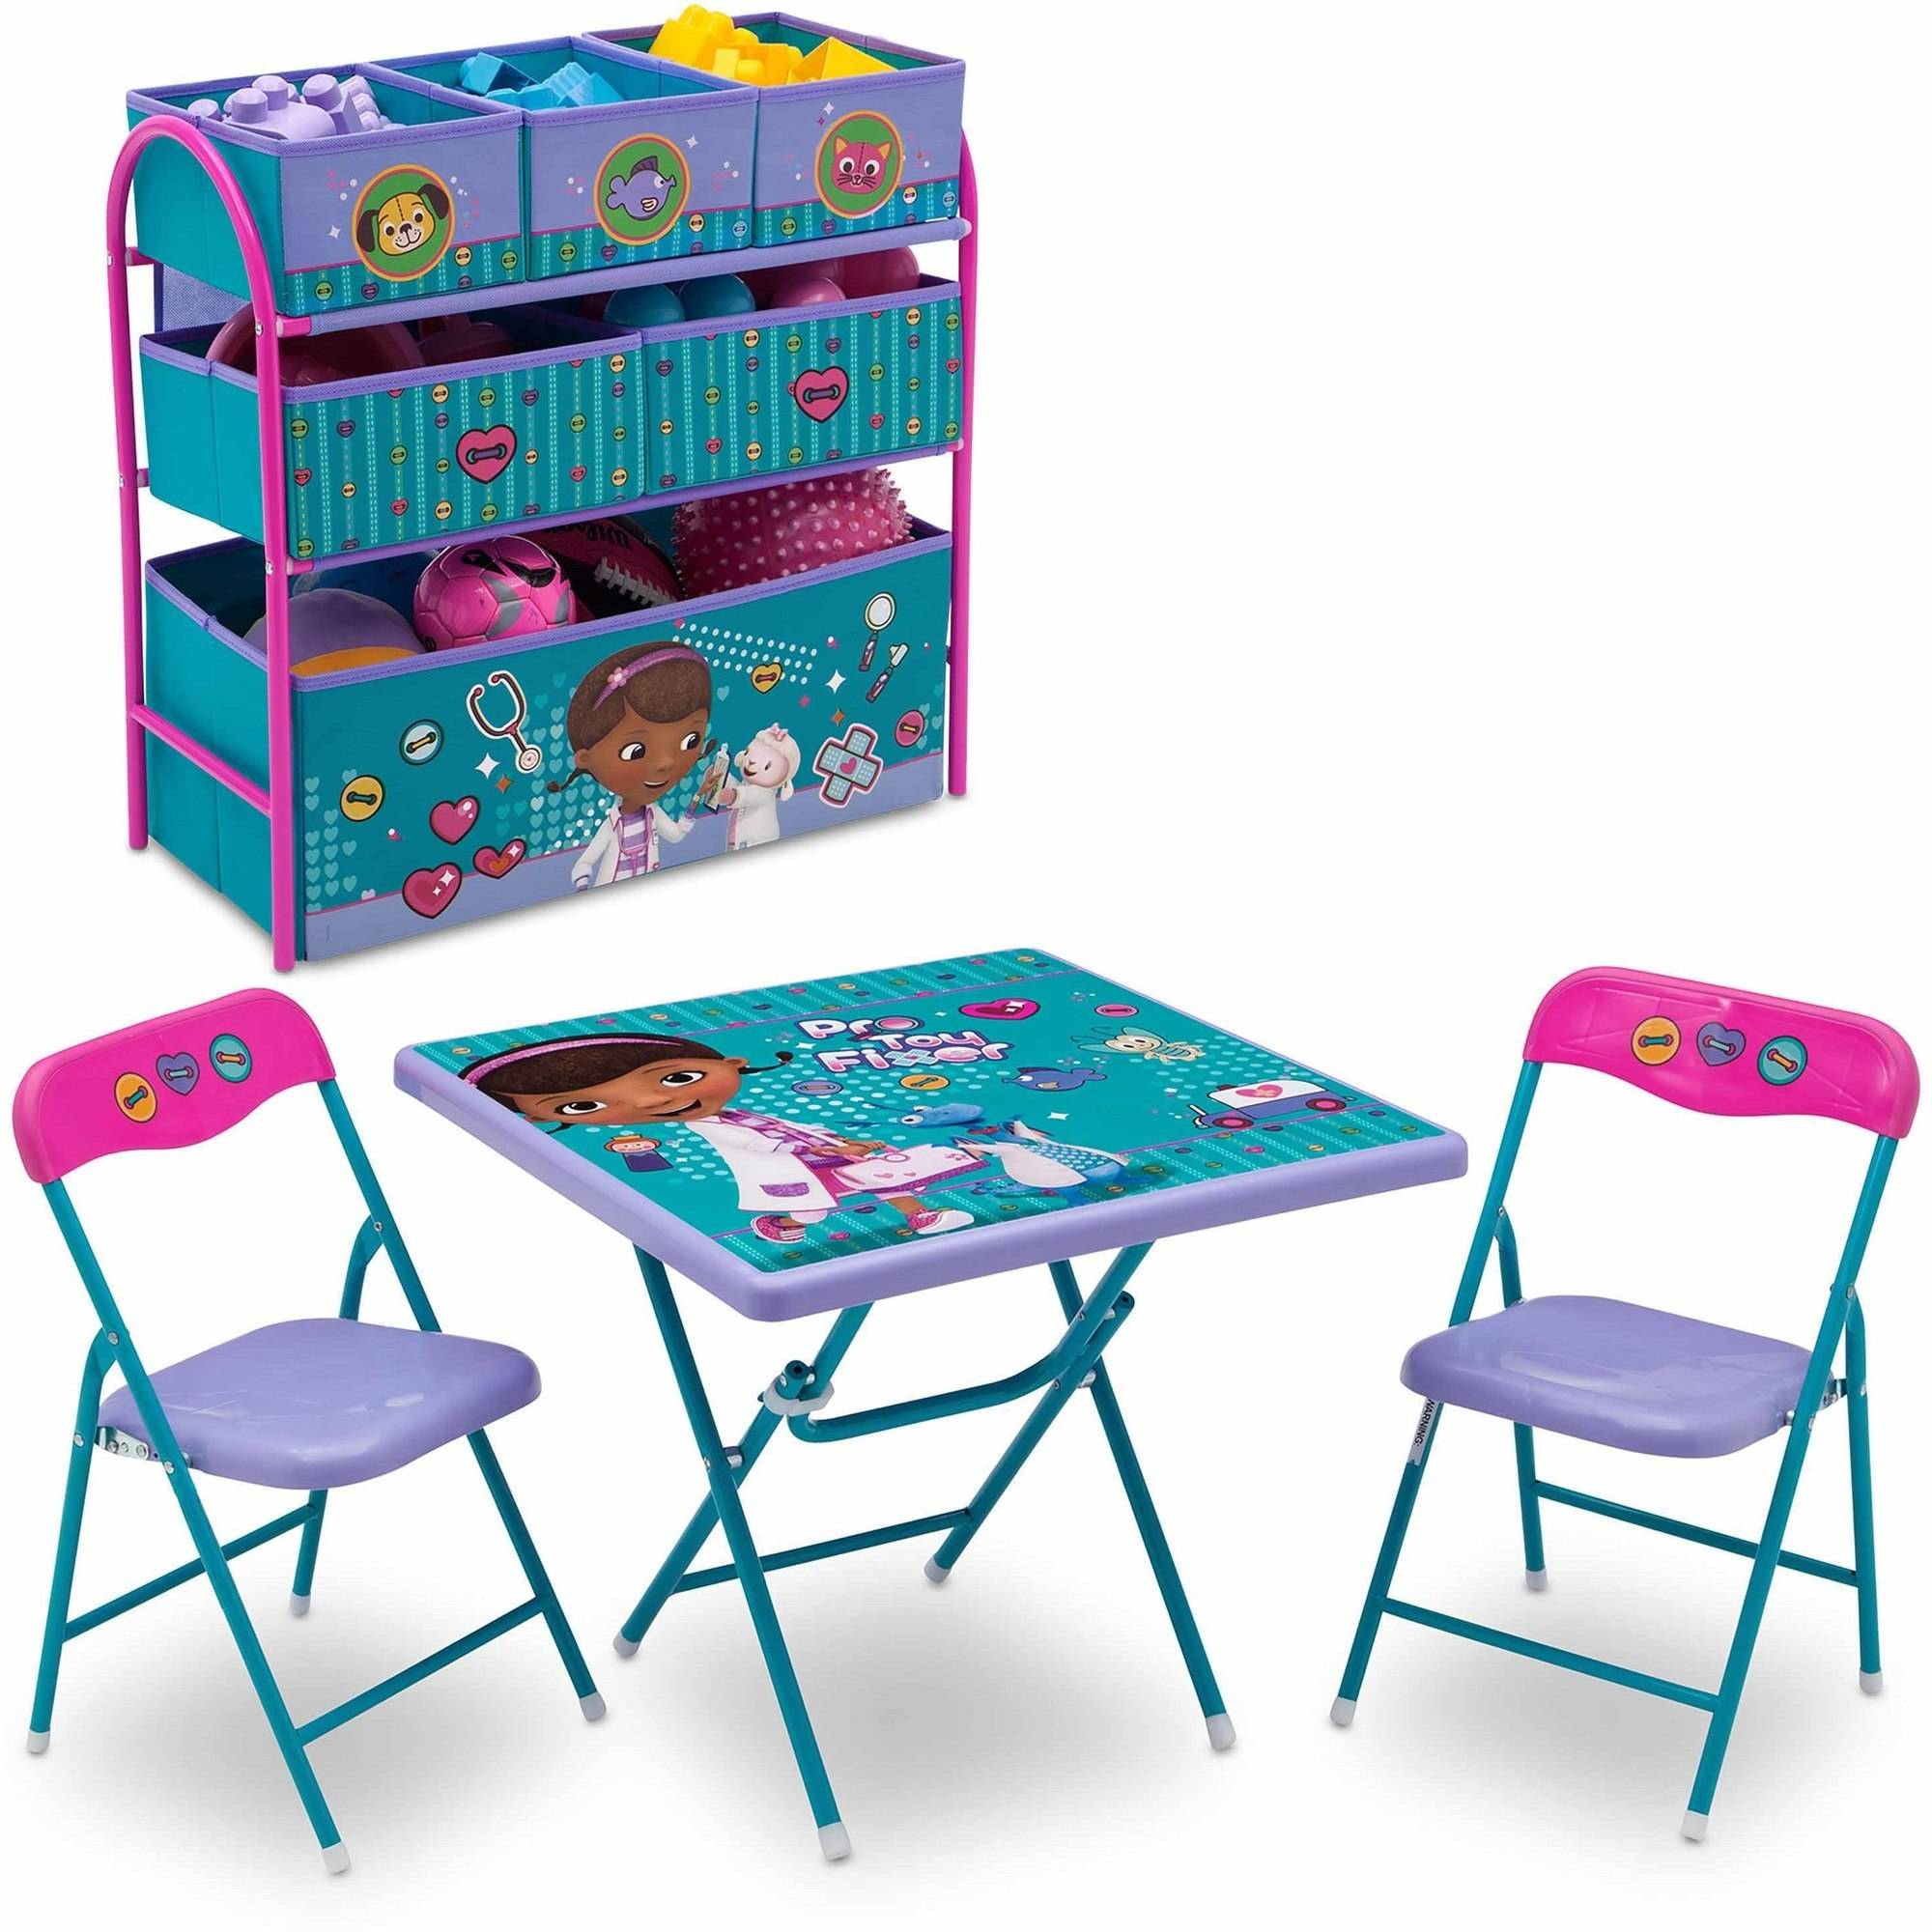 mickey mouse clubhouse table and chair set pink inflatable throne fun tables chairs for kids